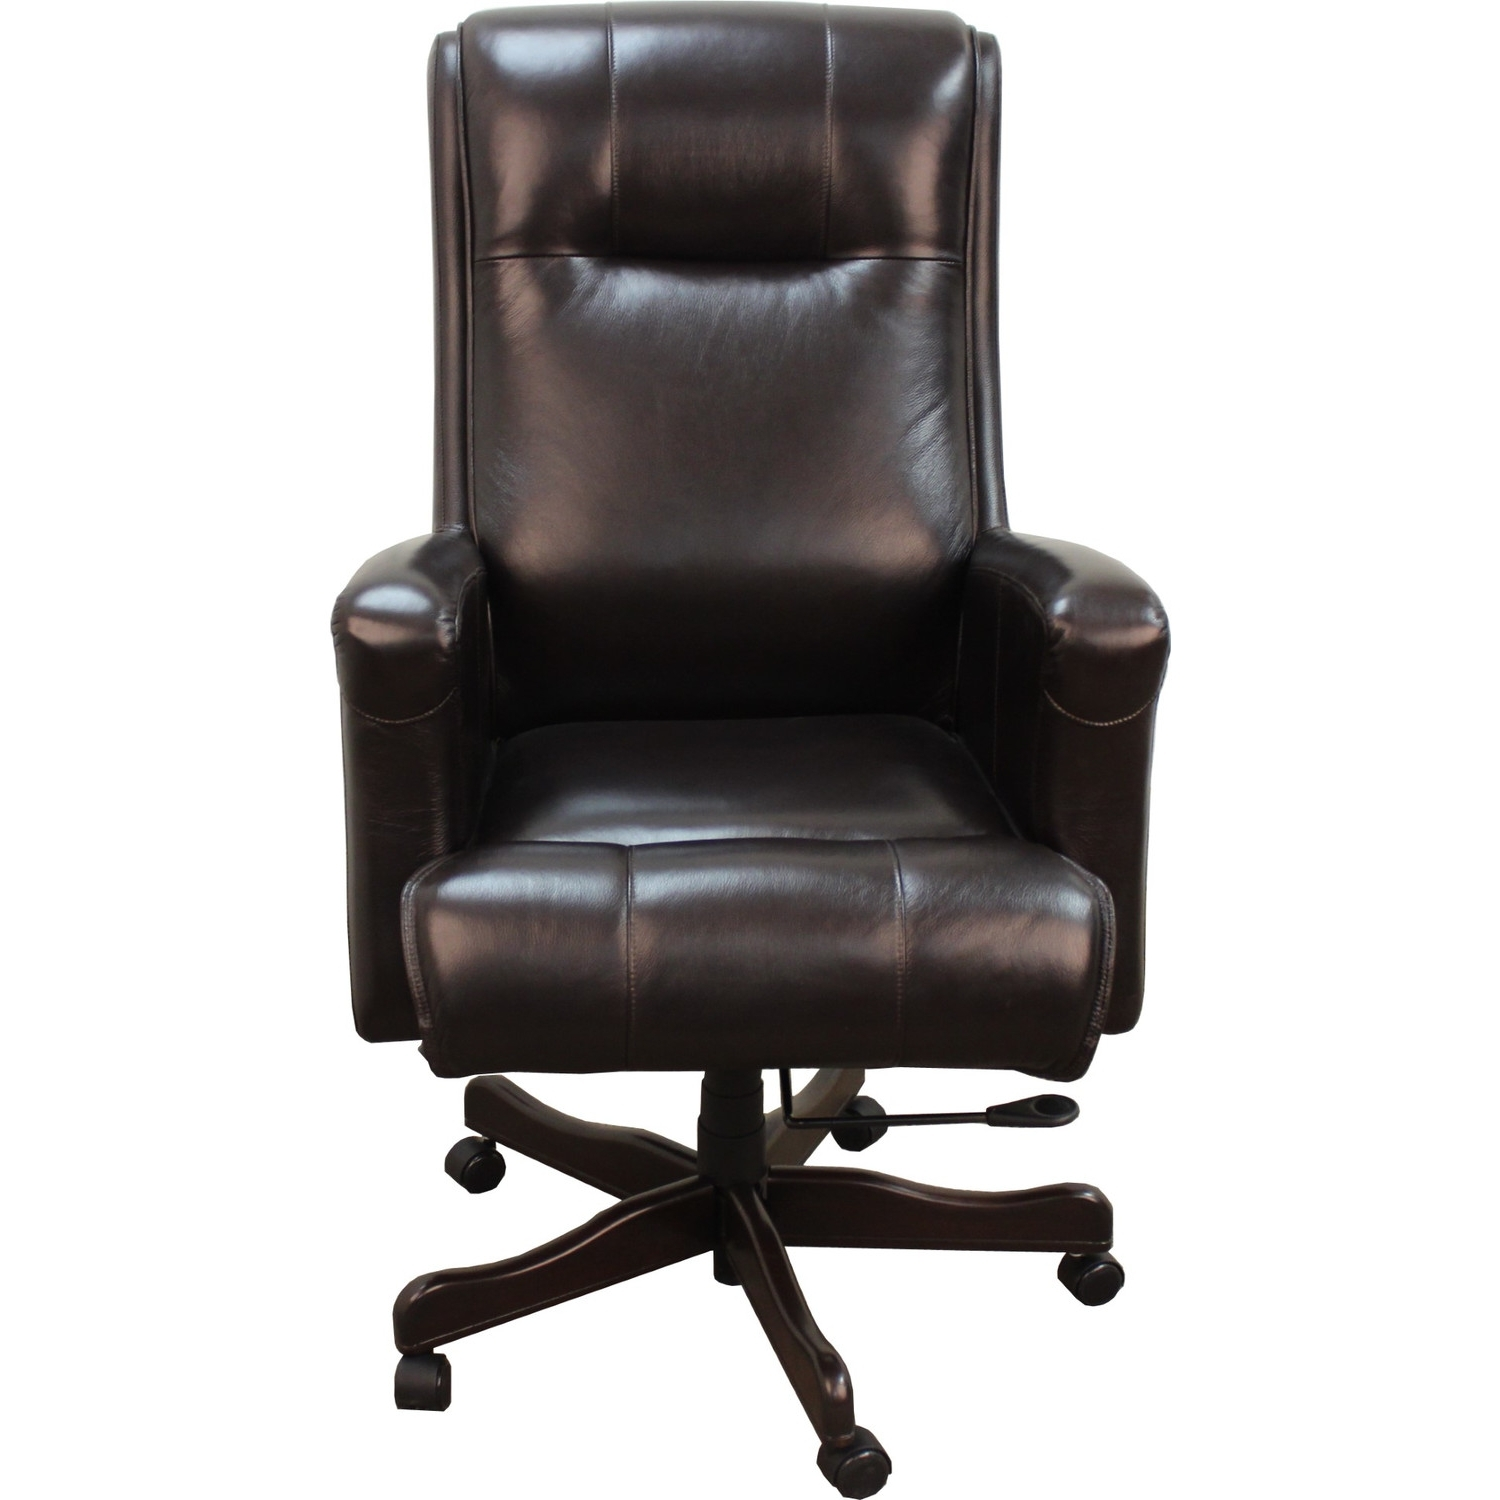 Popular Chair : La Z Boy Executive Leather Office Chair Voyager 92D33 Intended For Black Executive Office Chairs With High Back (View 16 of 20)